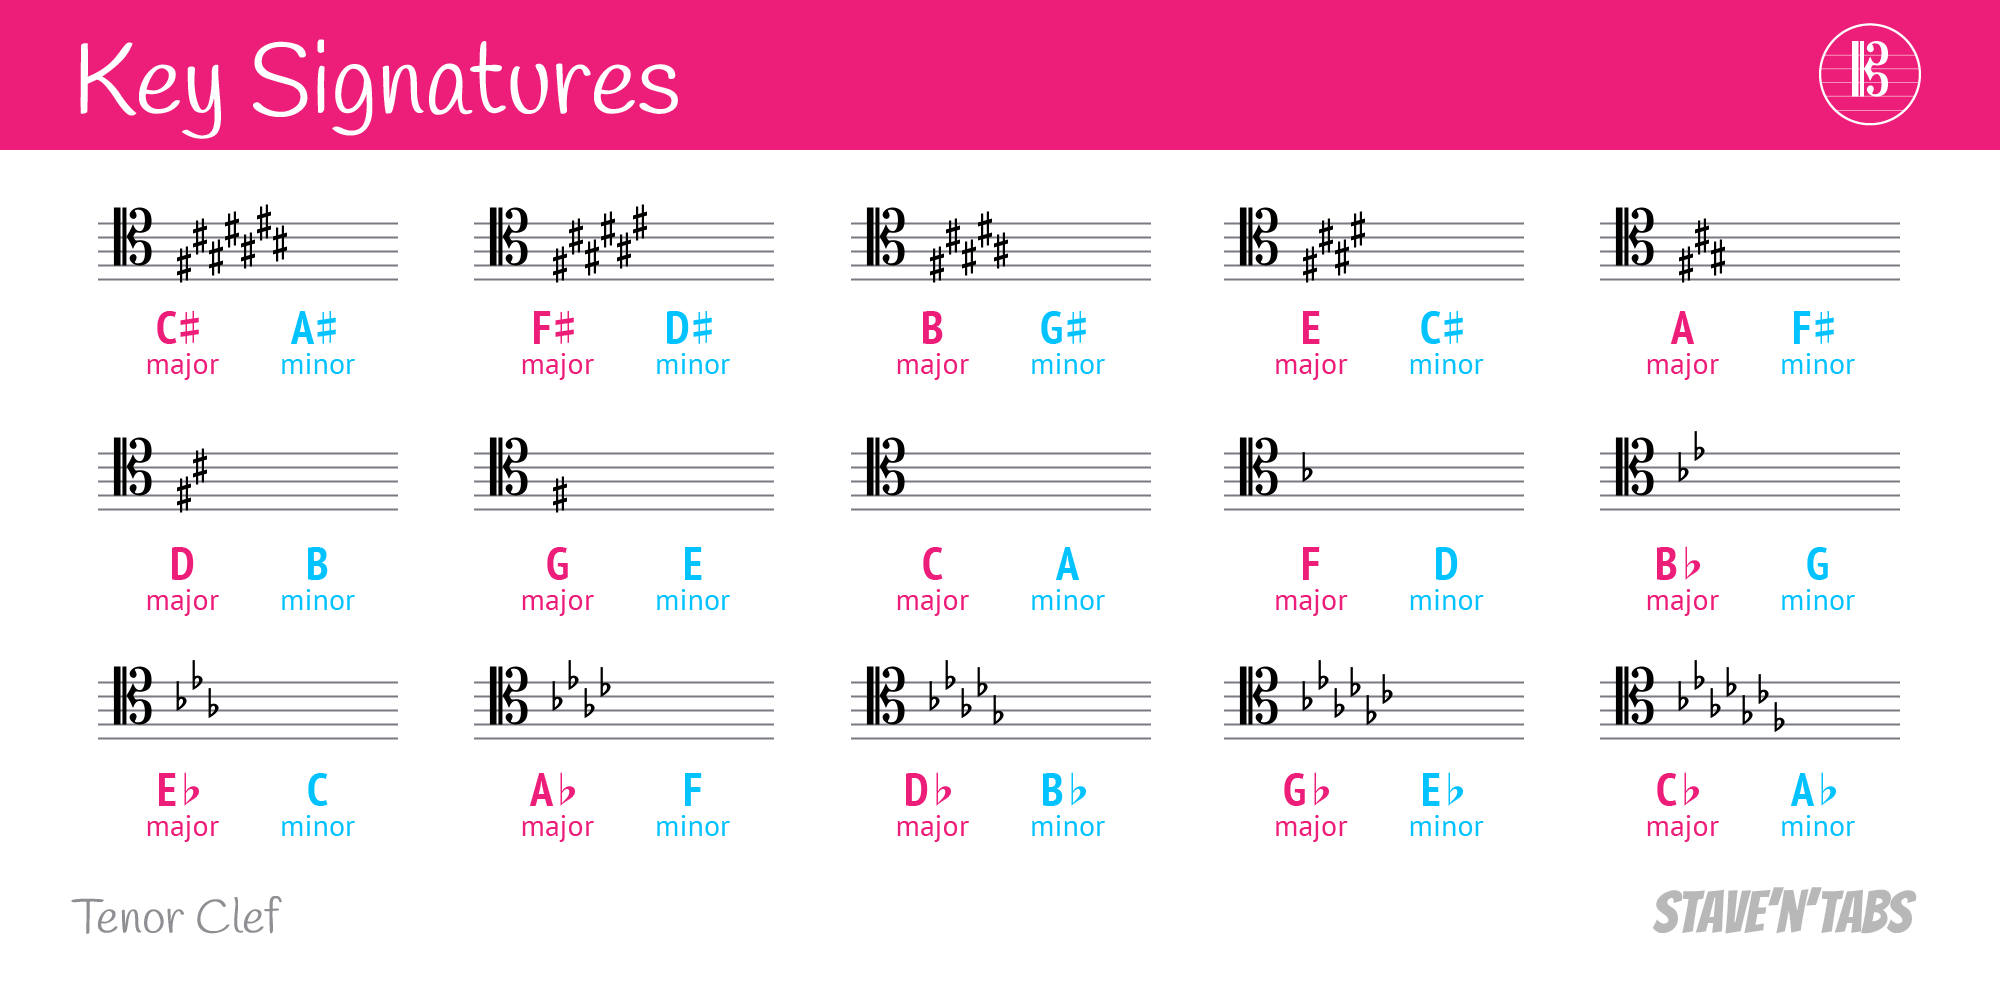 Key signatures in tenor clef